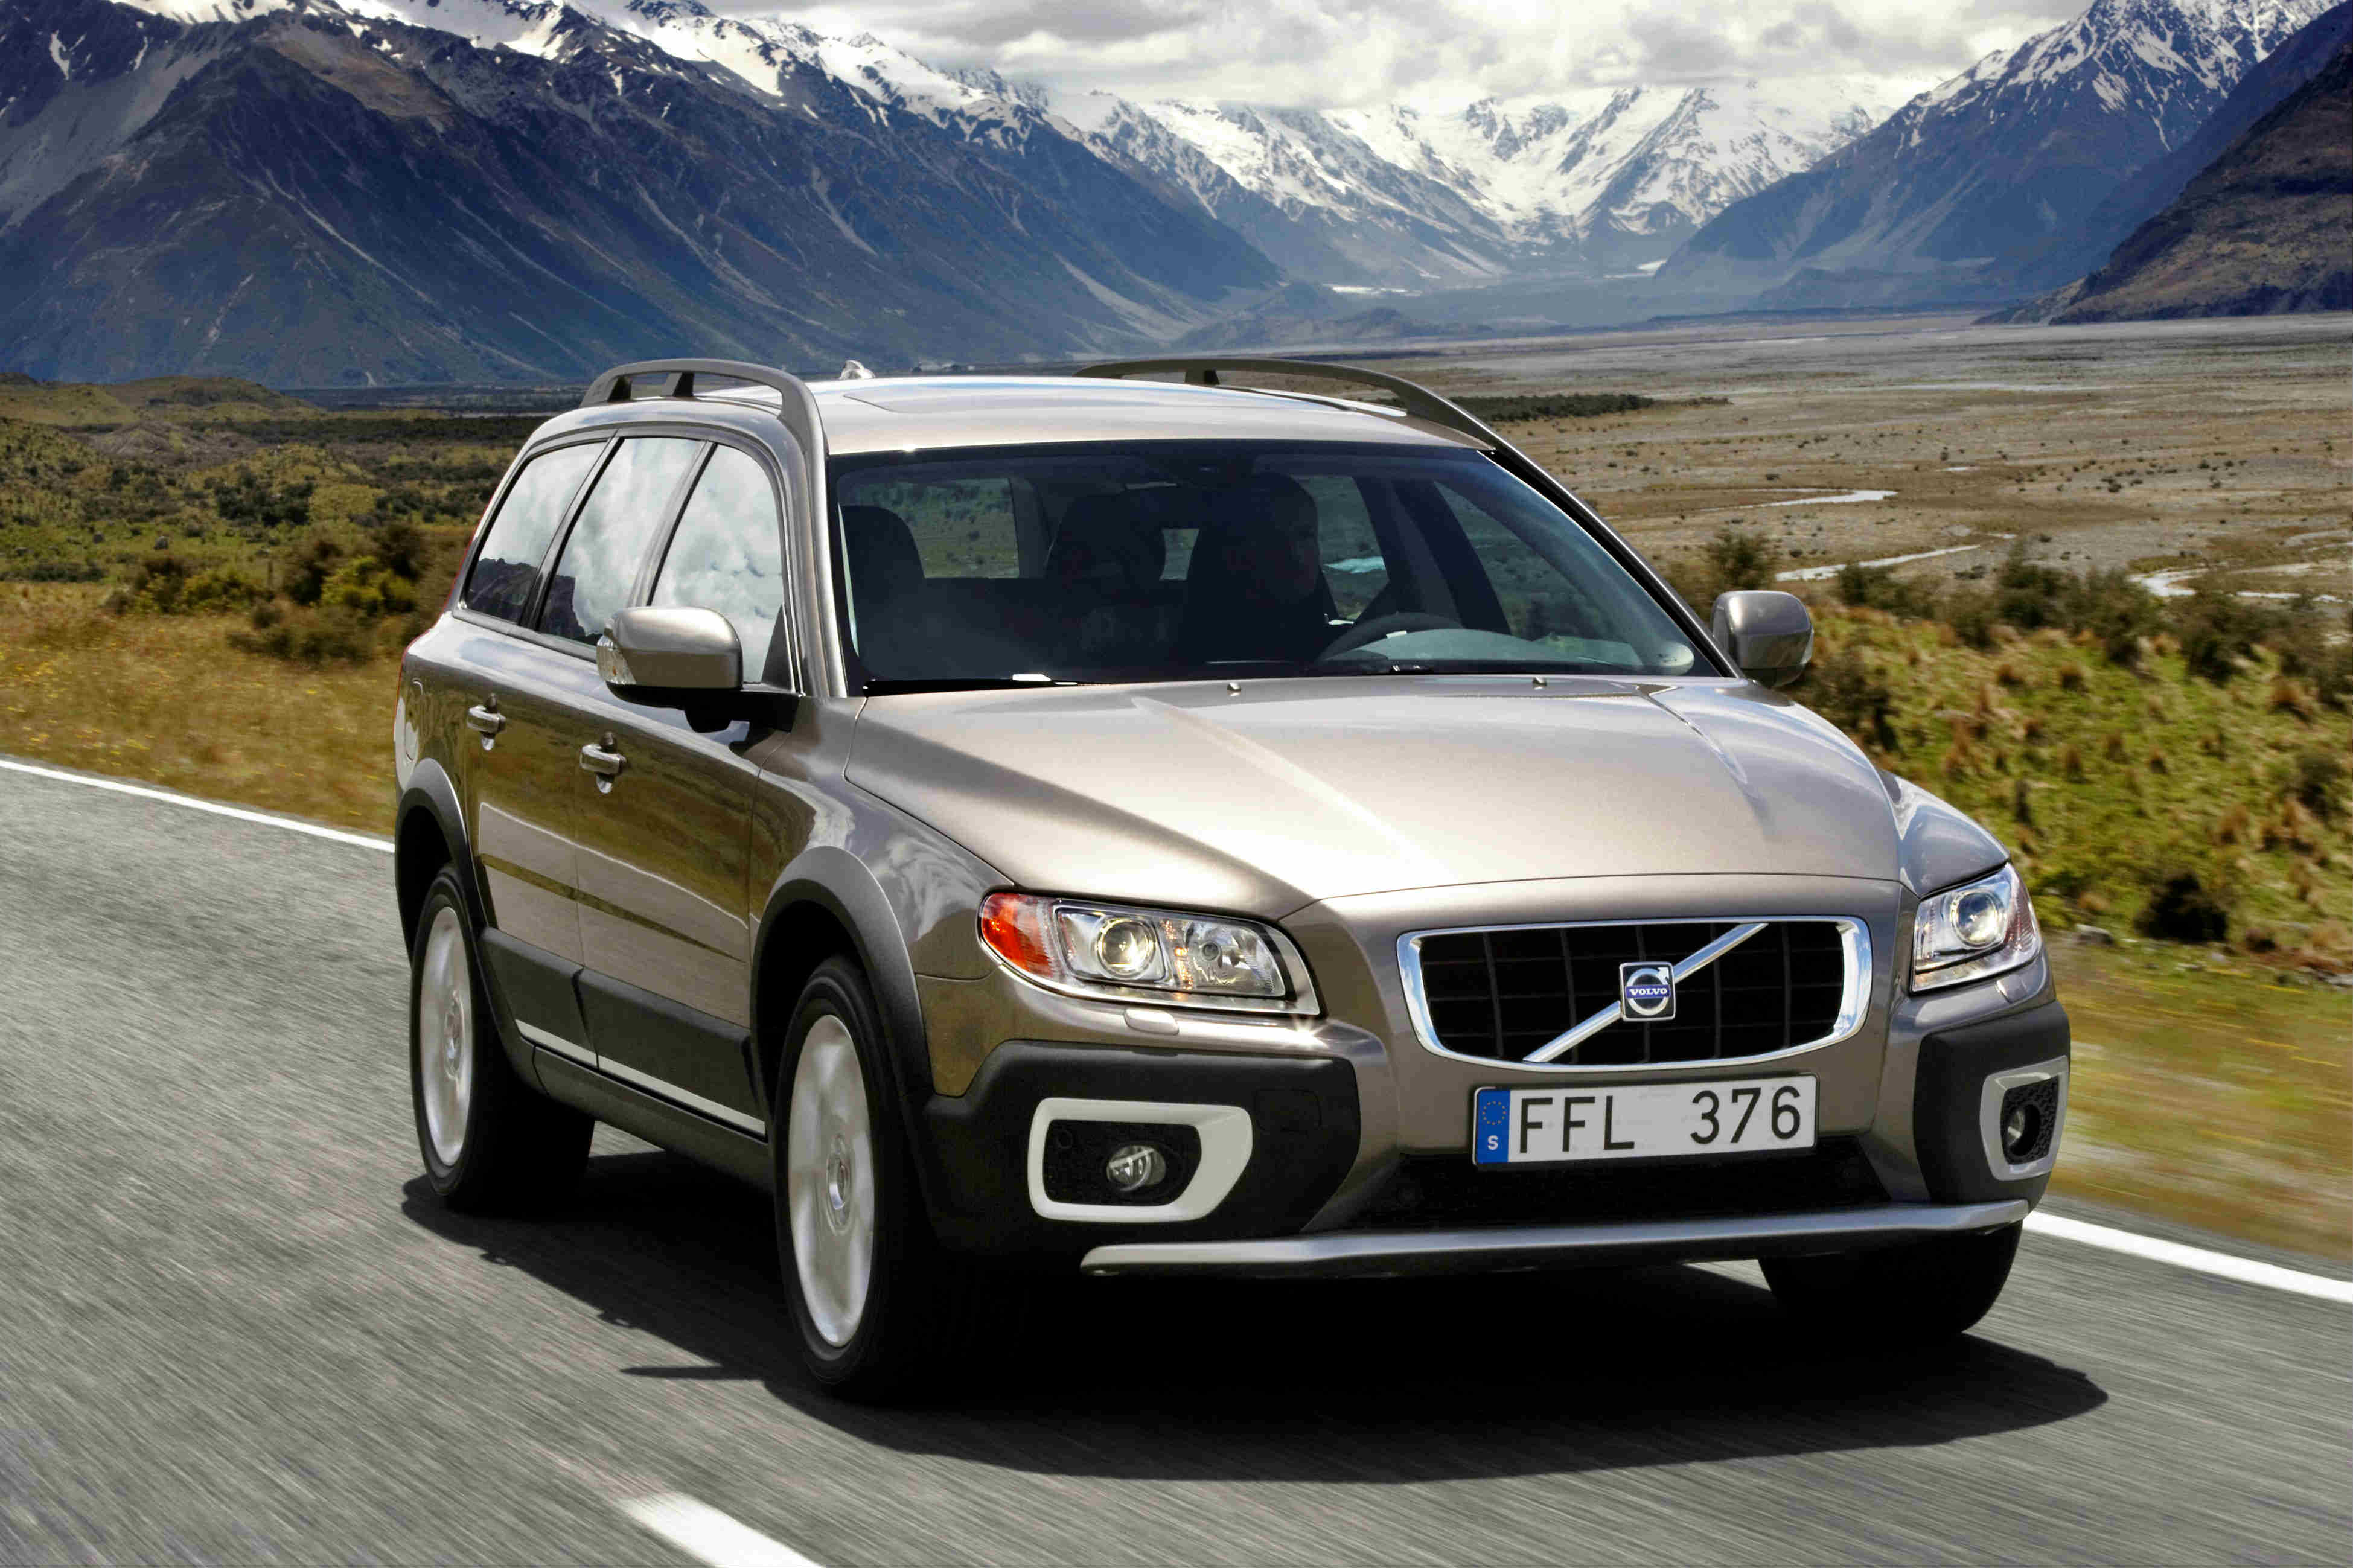 image of a gold volvo xc70 car exterior